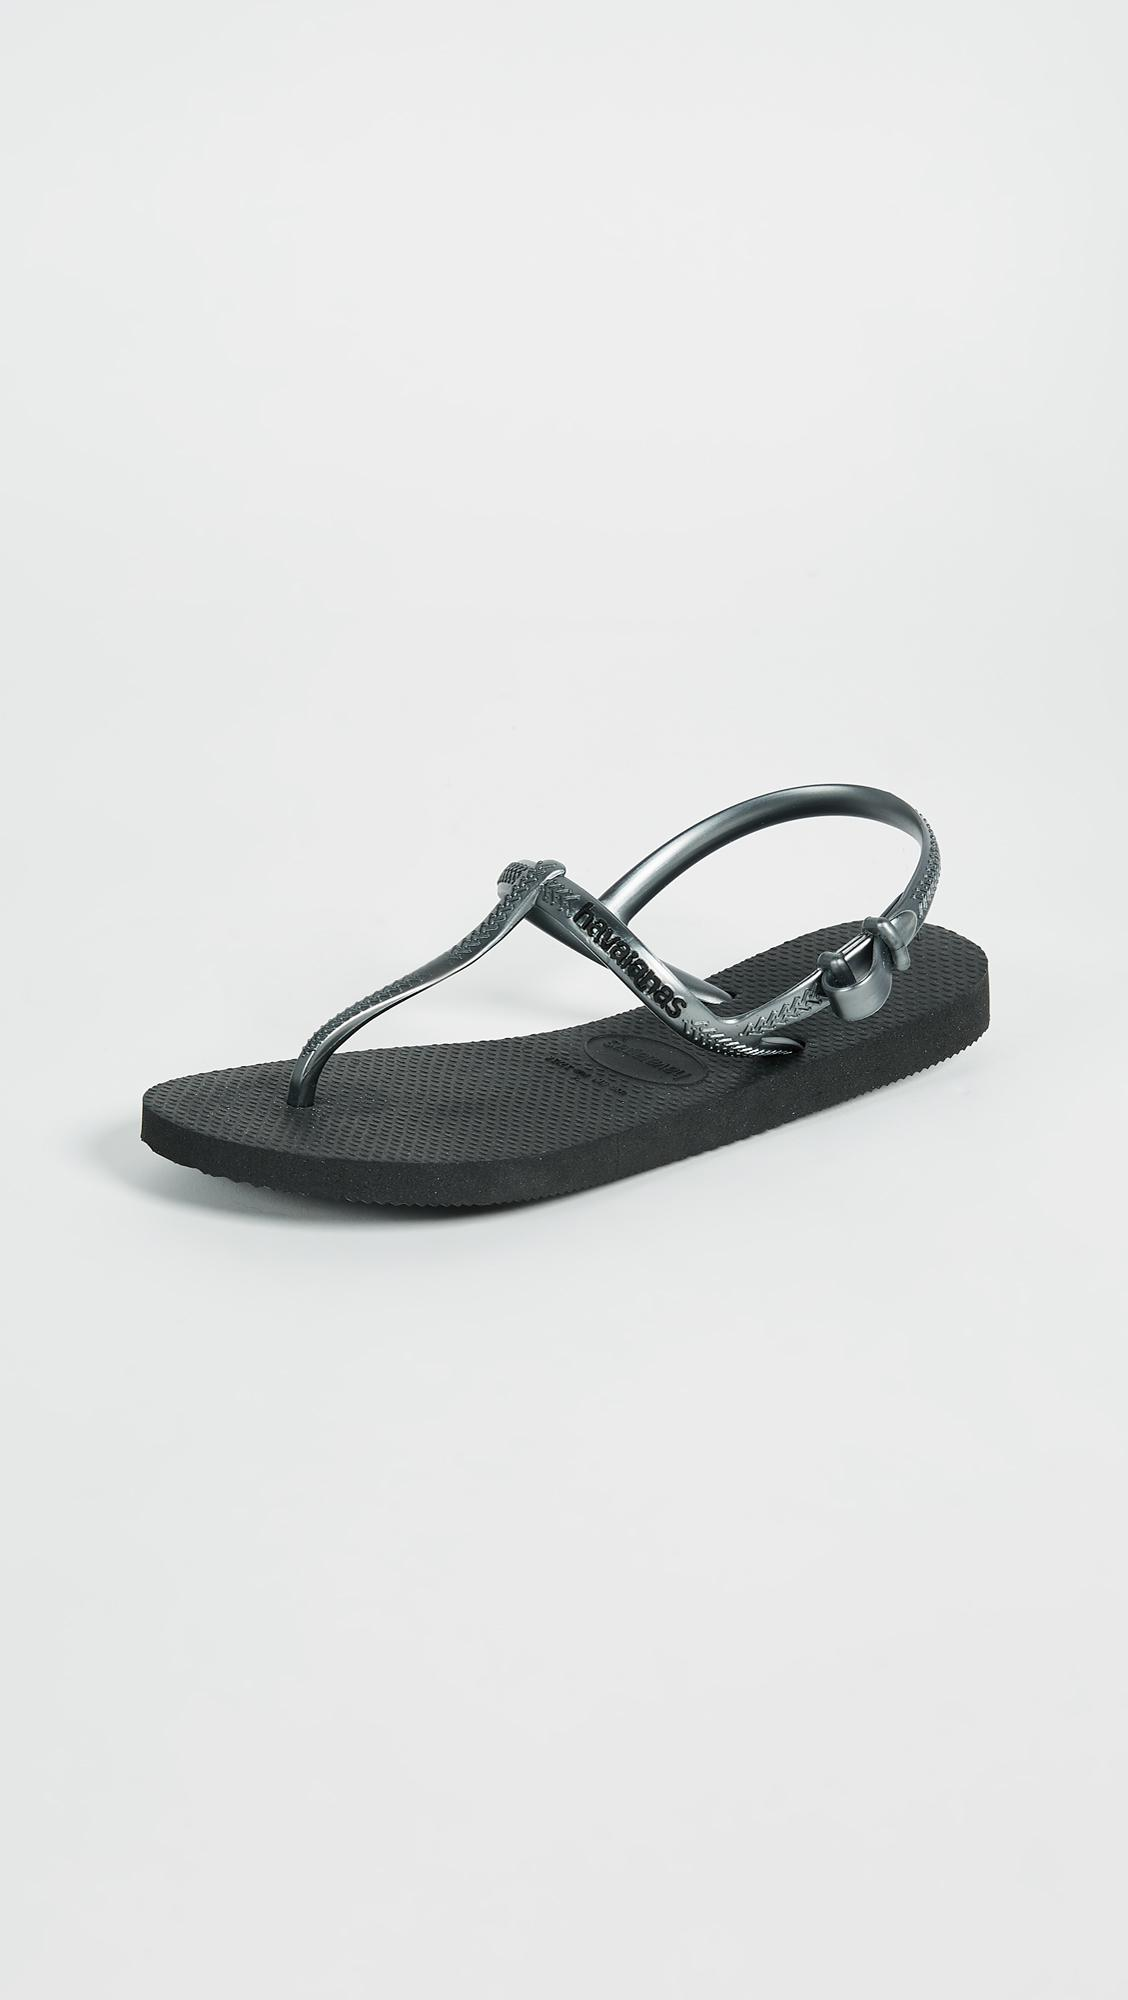 a6505d44535498 Havaianas Freedom T Strap Sandals in Black - Lyst